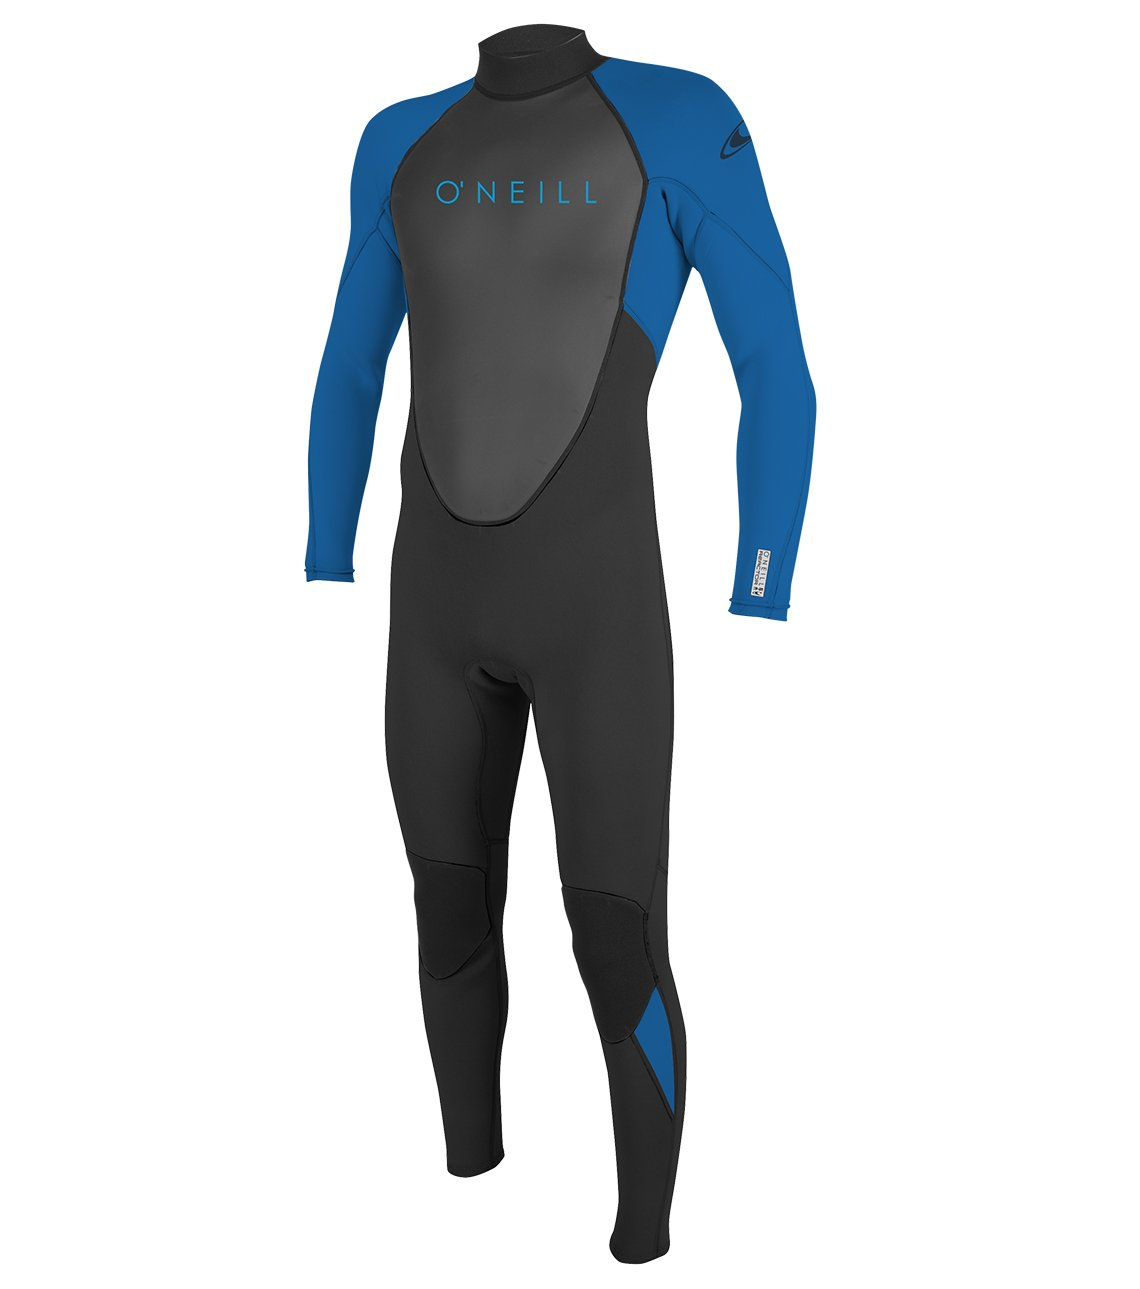 O'Neill Youth Reactor-2 3/2mm Back Zip Full Wetsuit, Black/Ocean, 10 by O'Neill Wetsuits